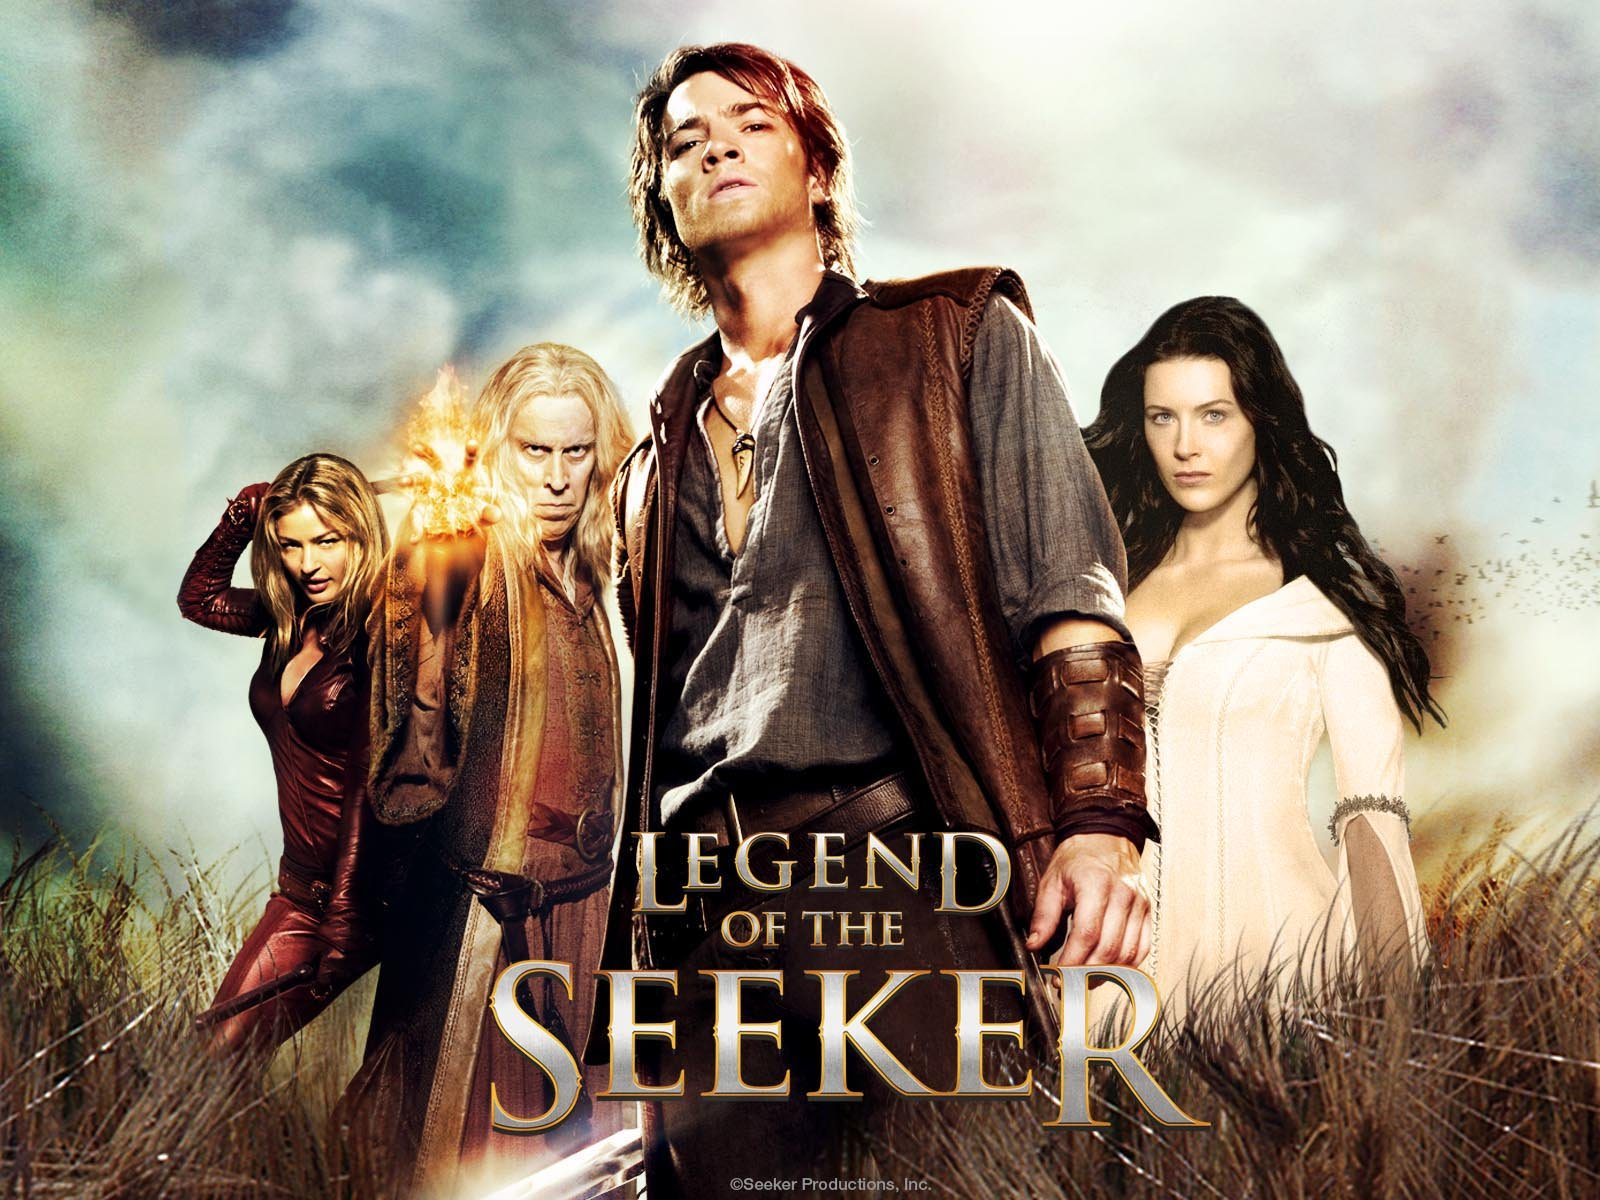 legend of the seeker full movie free download